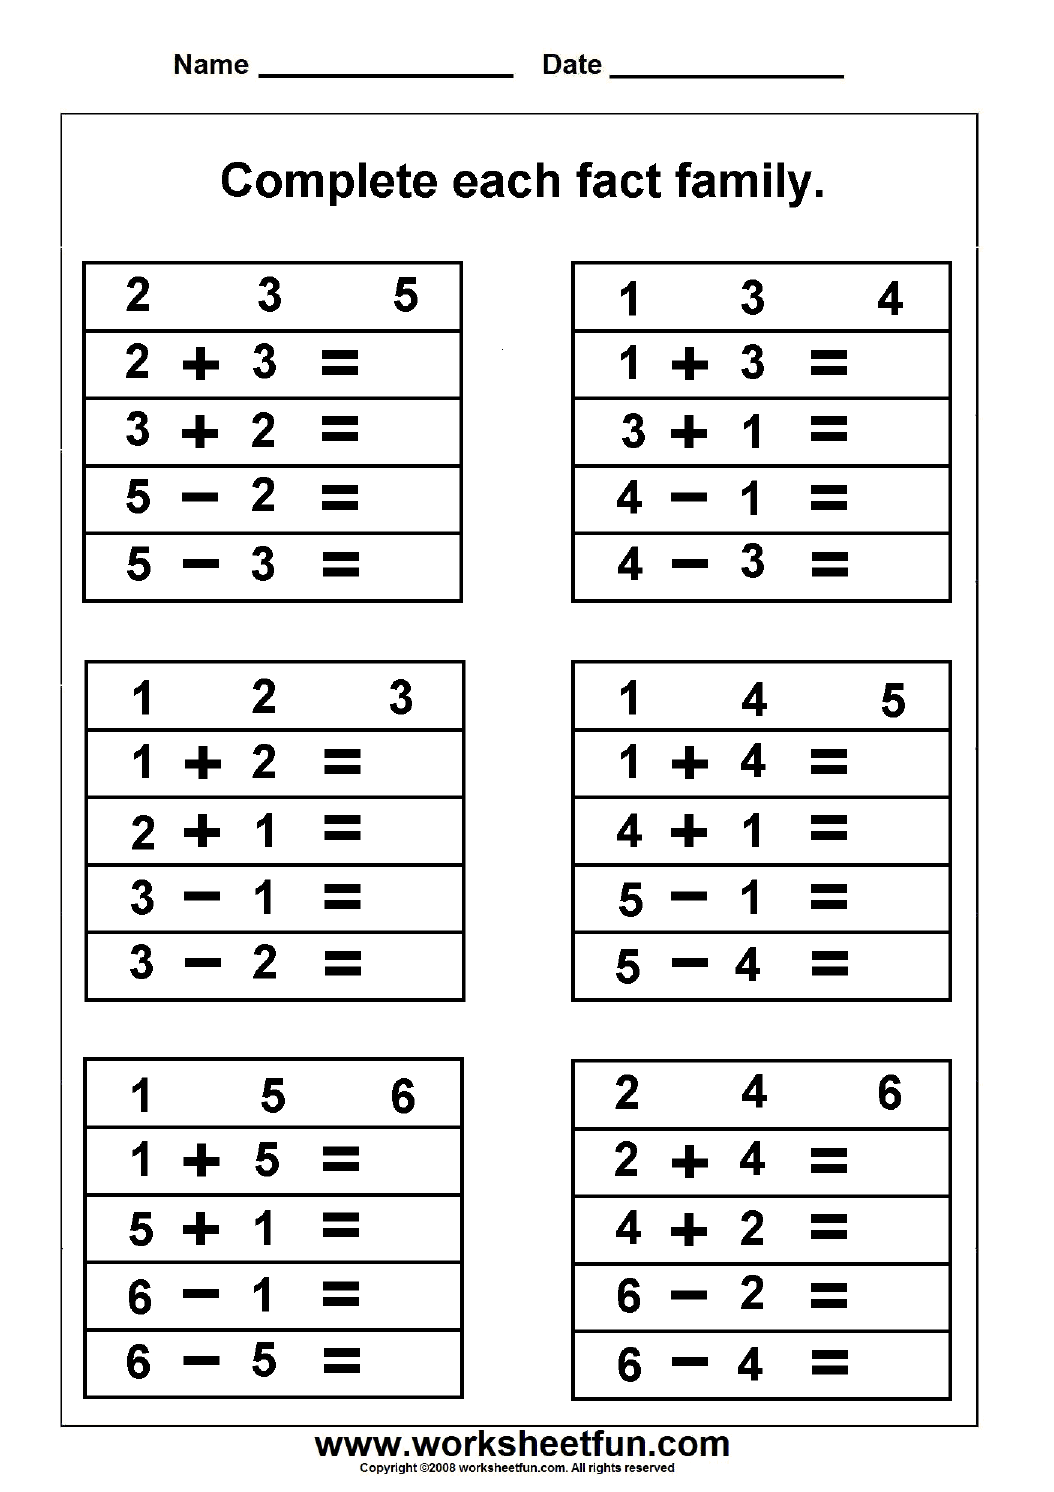 Numbers Fact Family FREE Printable Worksheets Worksheetfun – Addition Facts Worksheet 1st Grade